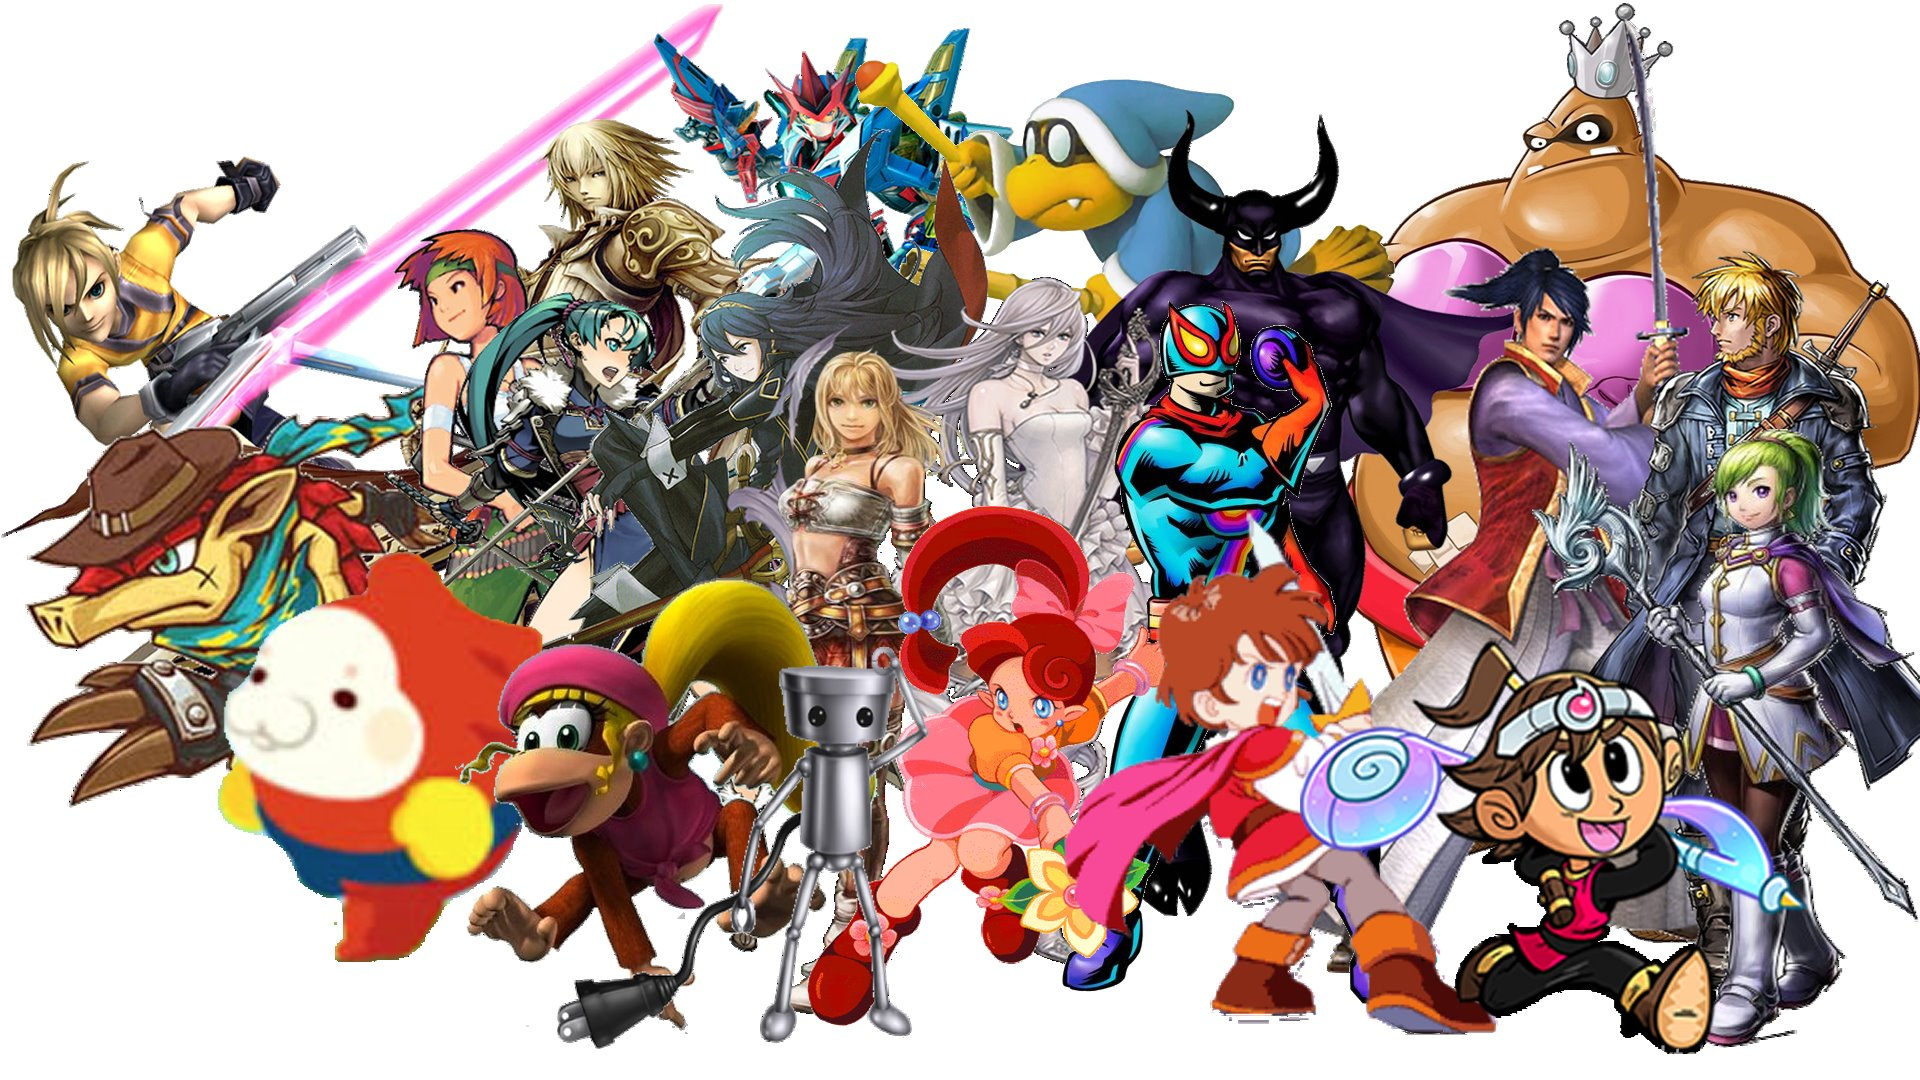 10 Super Smash Bros For Nintendo 3ds And Wii U Hd Wallpapers